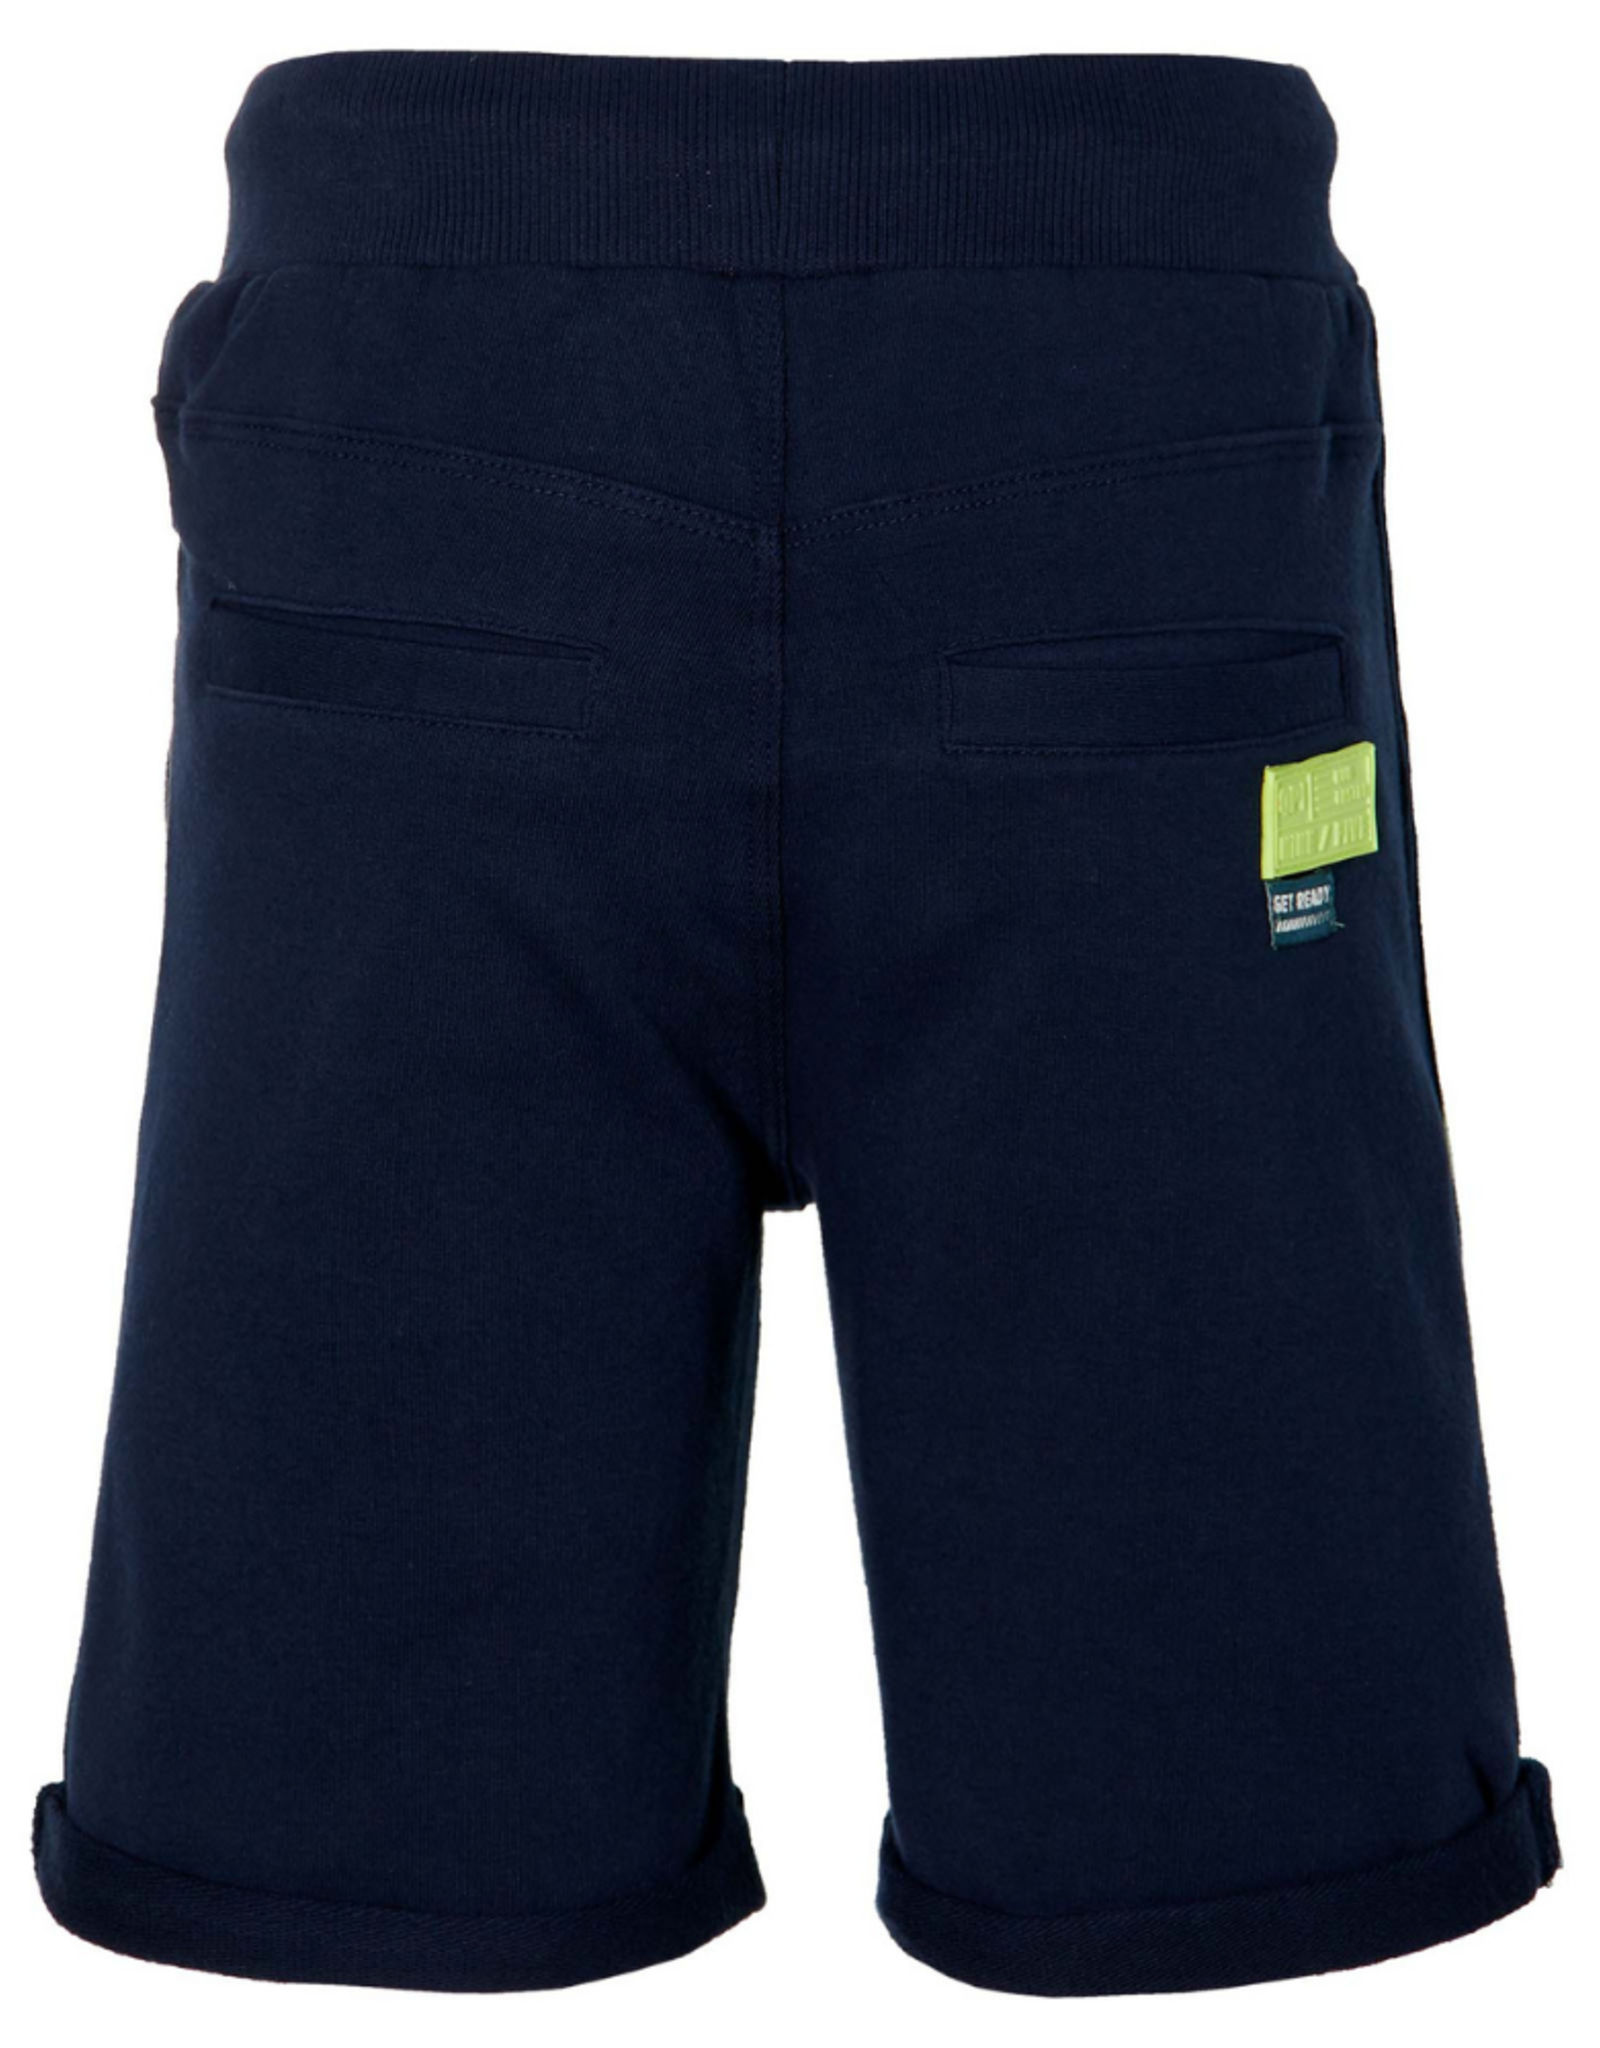 Quapi Quapi short Florius dark blue